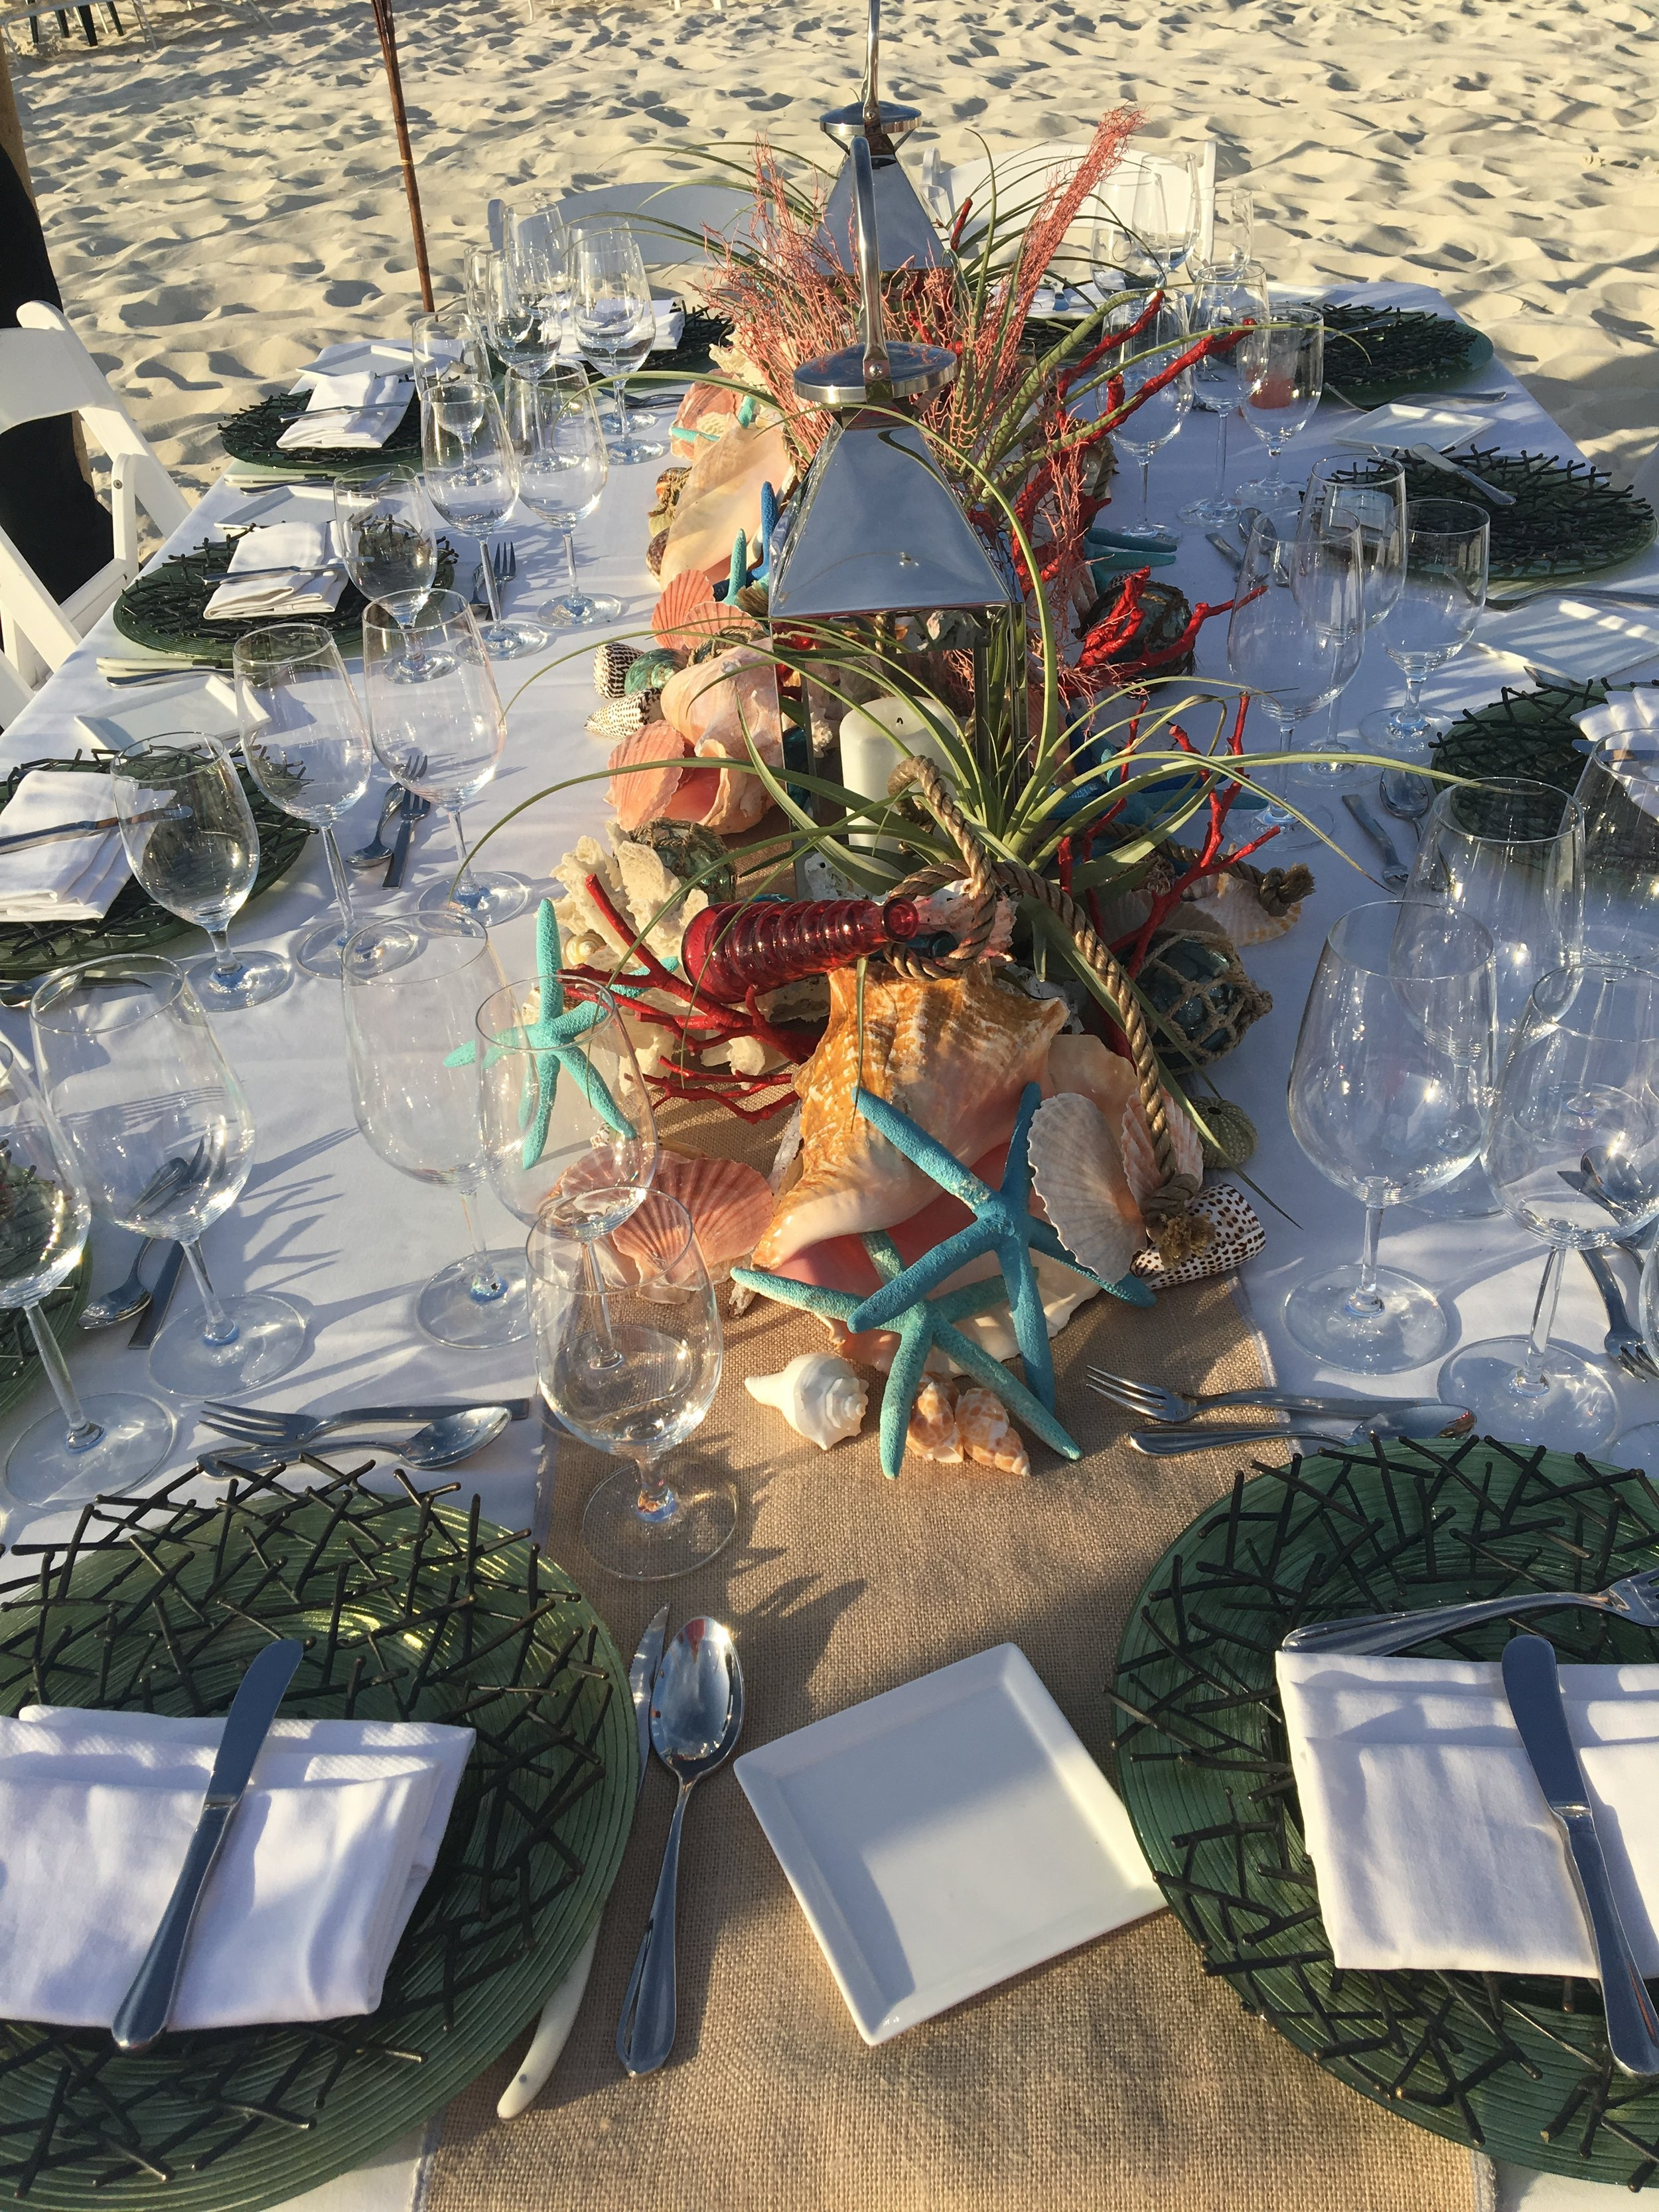 Celebrating a special occasion? Let's plan a spectacular outdoor dinner.